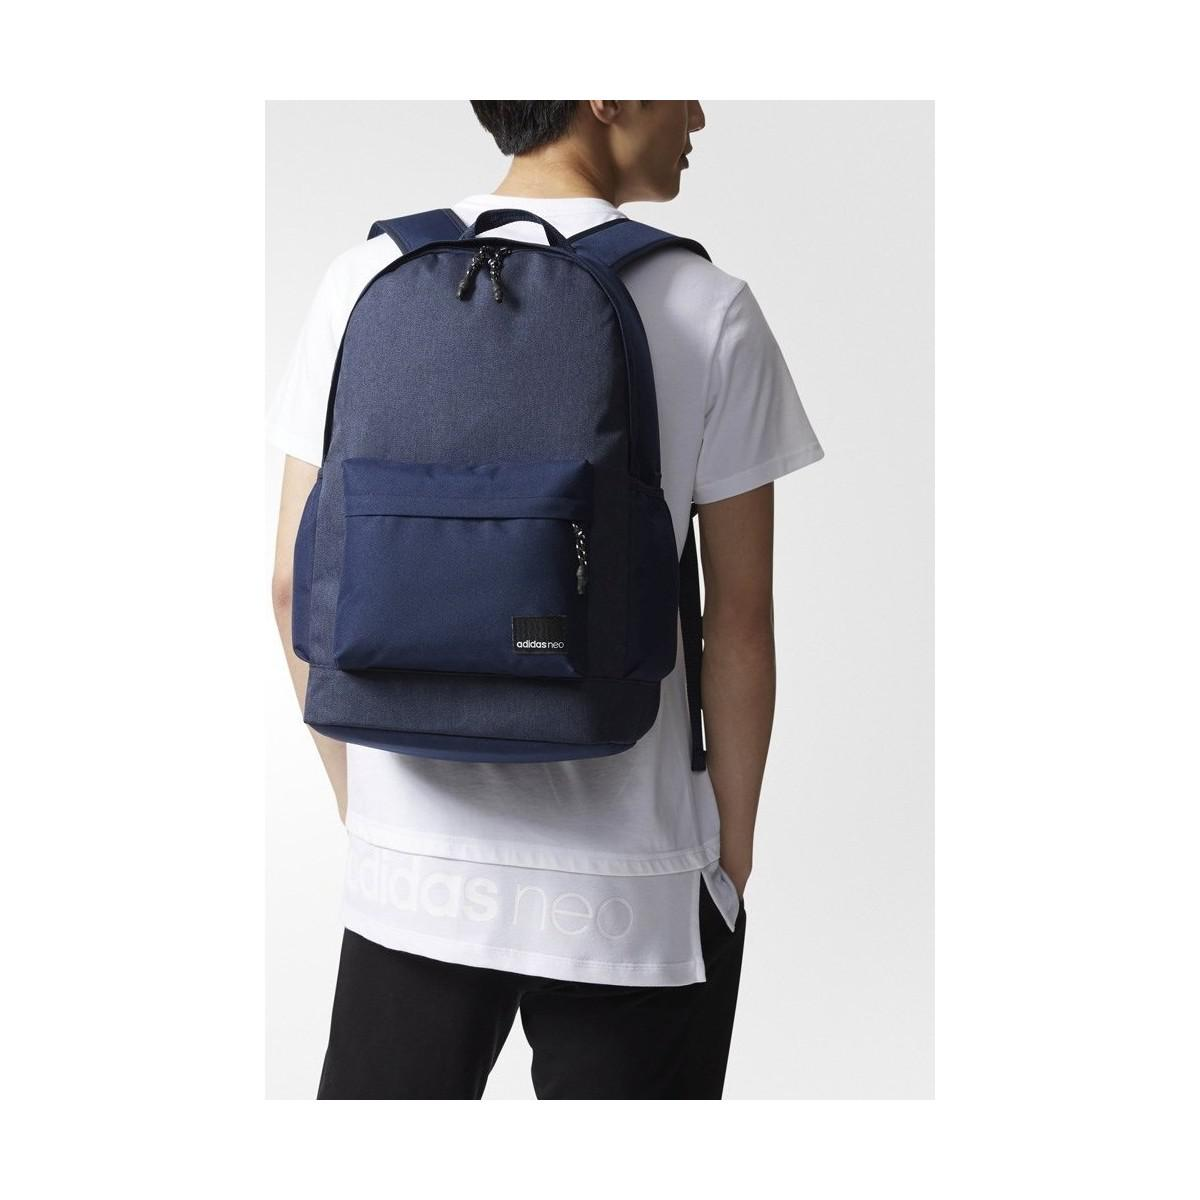 adidas Bp Daily Xl Men s Backpack In Multicolour in Blue for Men - Lyst 9439276e74f9c